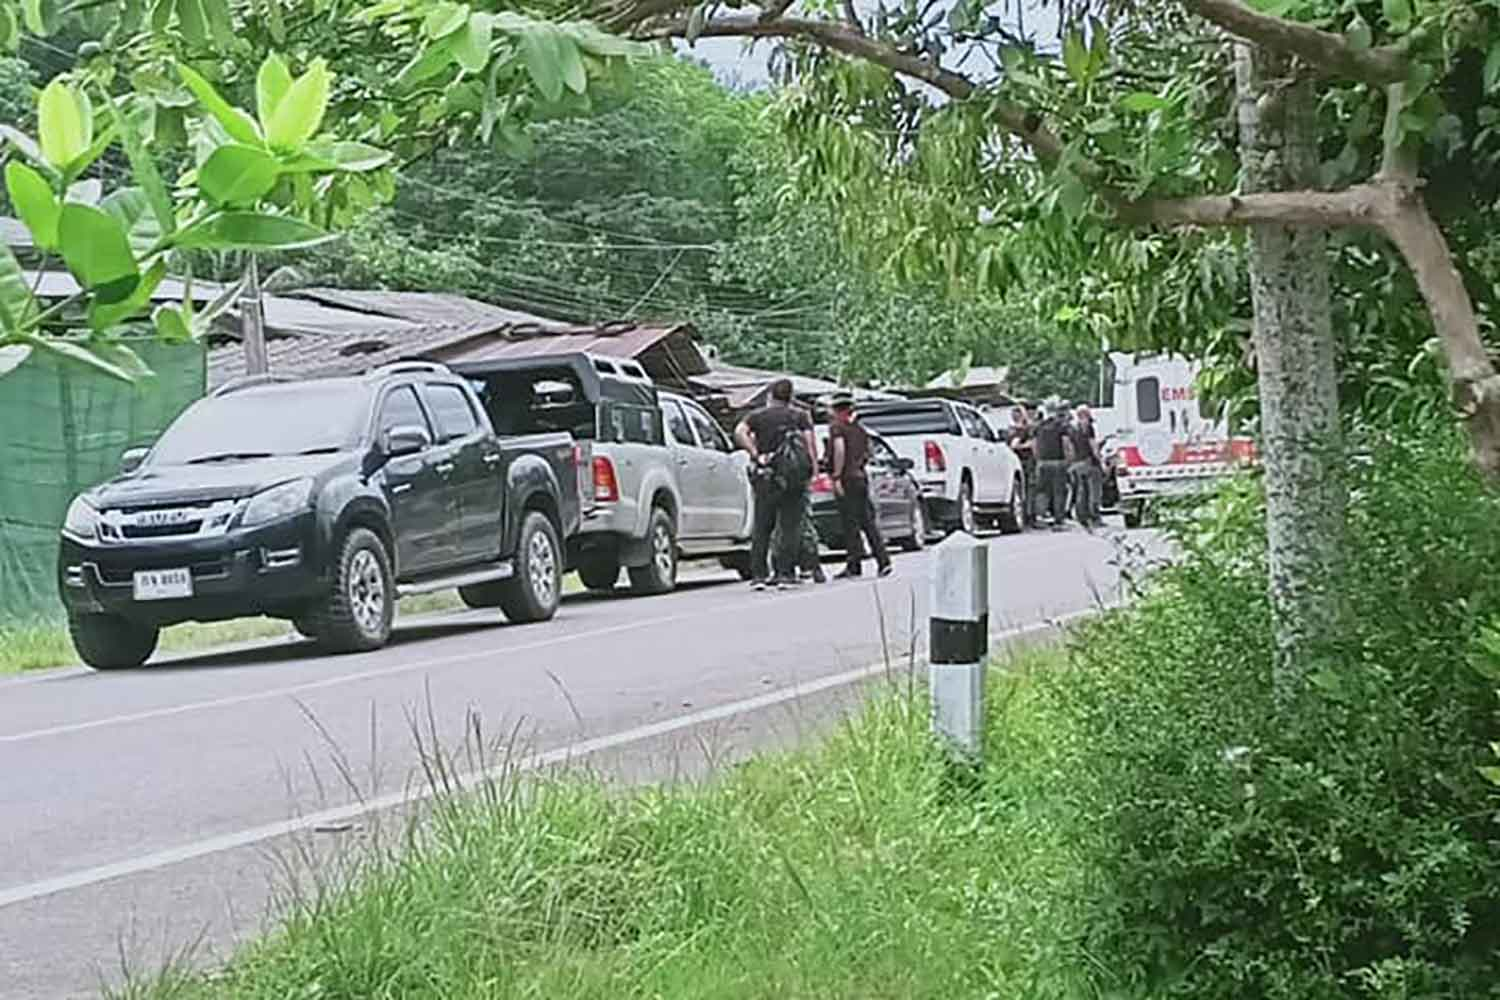 Members of the combined government force deployed to two villages in tambon Sa-e in Yala's Krong Pinang district, on Tuesday afternoon. One ranger and two insurgents were killed in the subsequent clash. (Photo: Abdullah Benjakat)